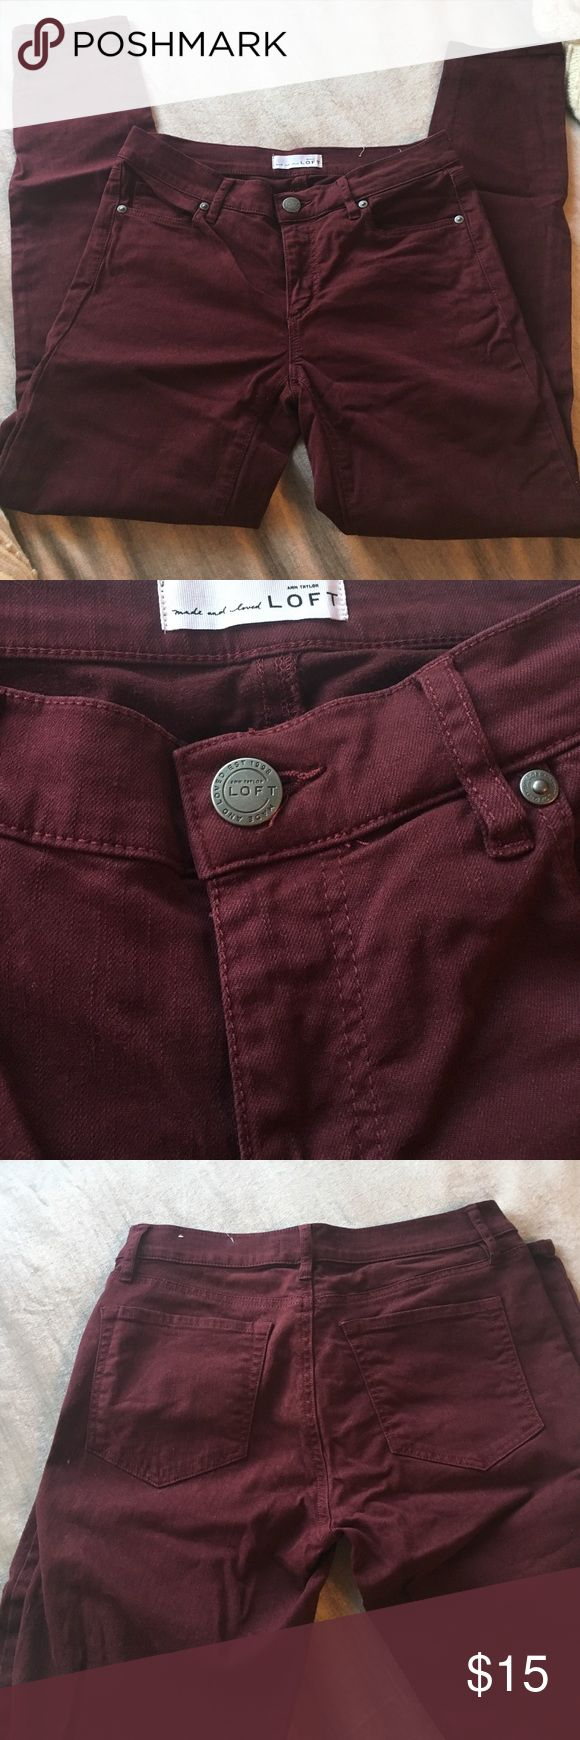 Loft modern skinny jeans Worn and washed once. They are a pretty burgundy color but they don't have a lot of stretch and don't fit me good! It was uncomfortable when I wore them. Please look at my other listings to see if you would like to make a bundle! LOFT Jeans Skinny